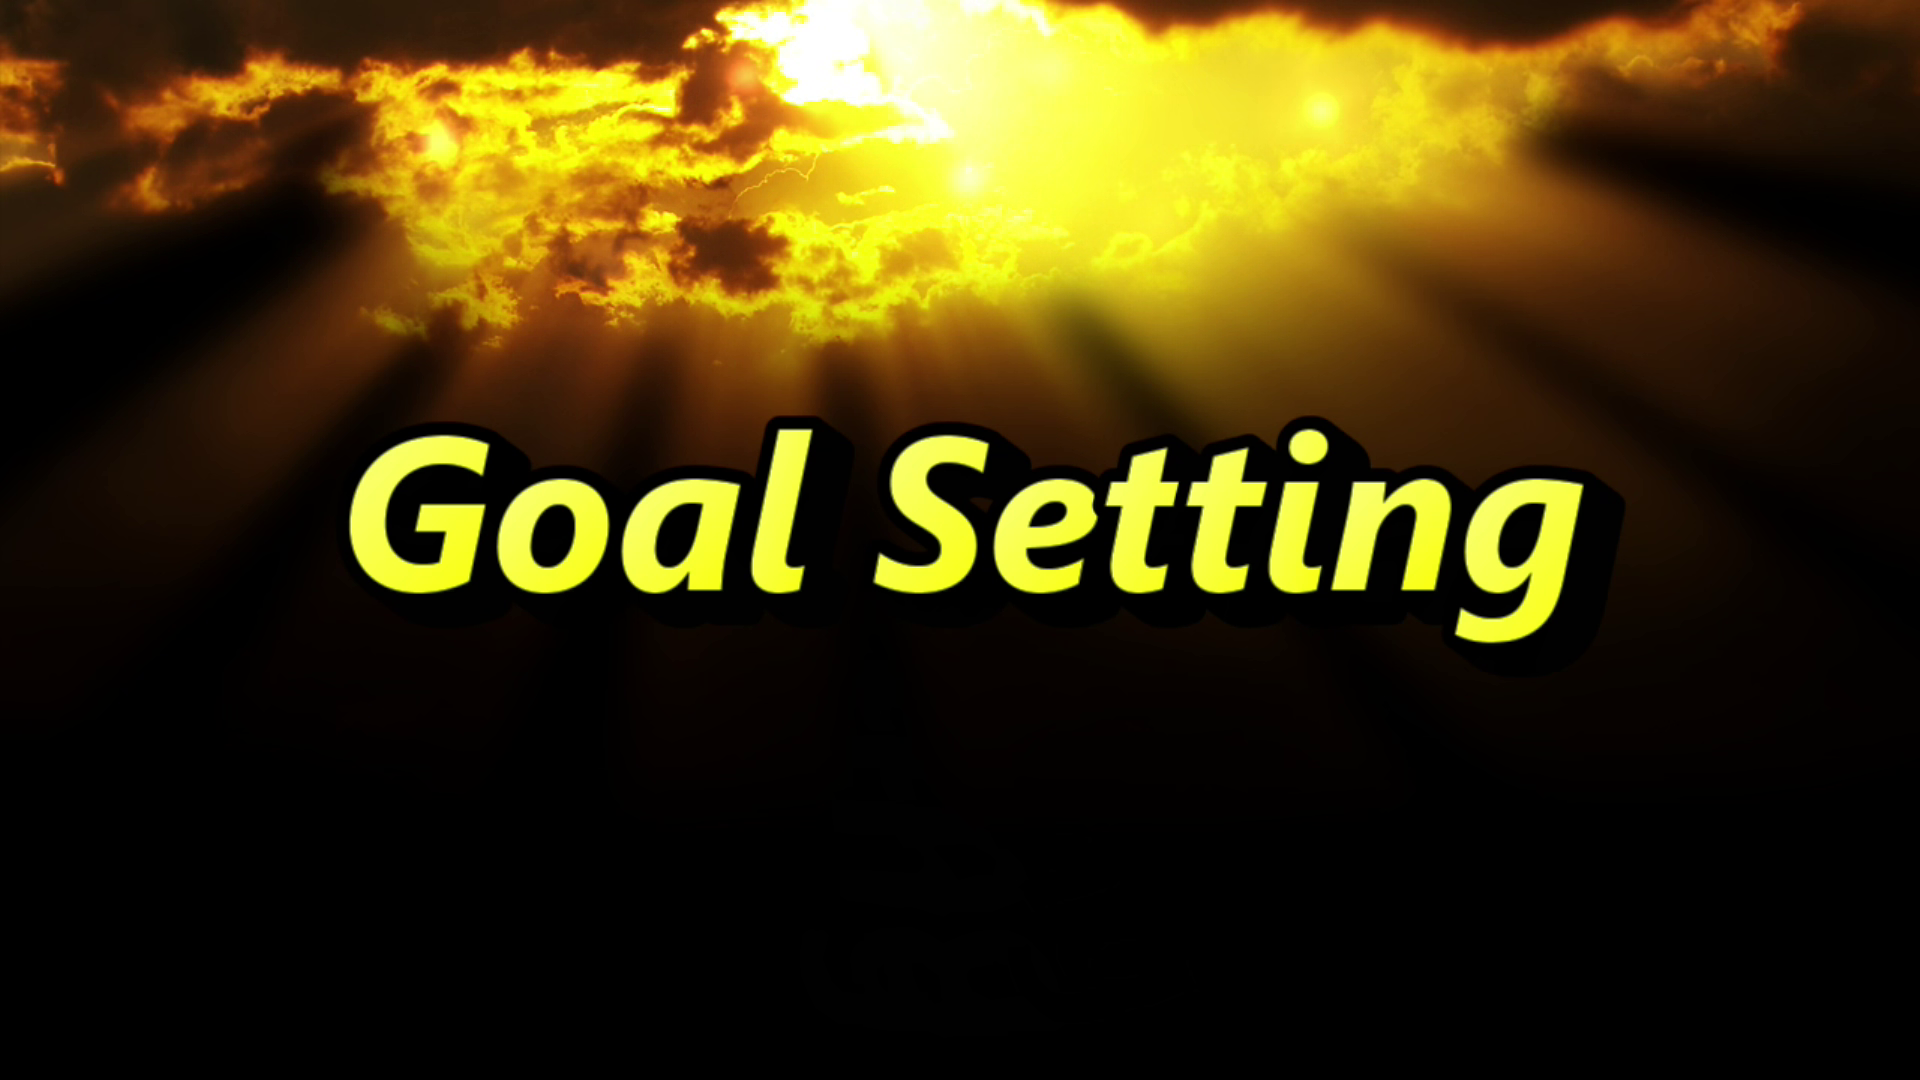 Online Goal Setting Course